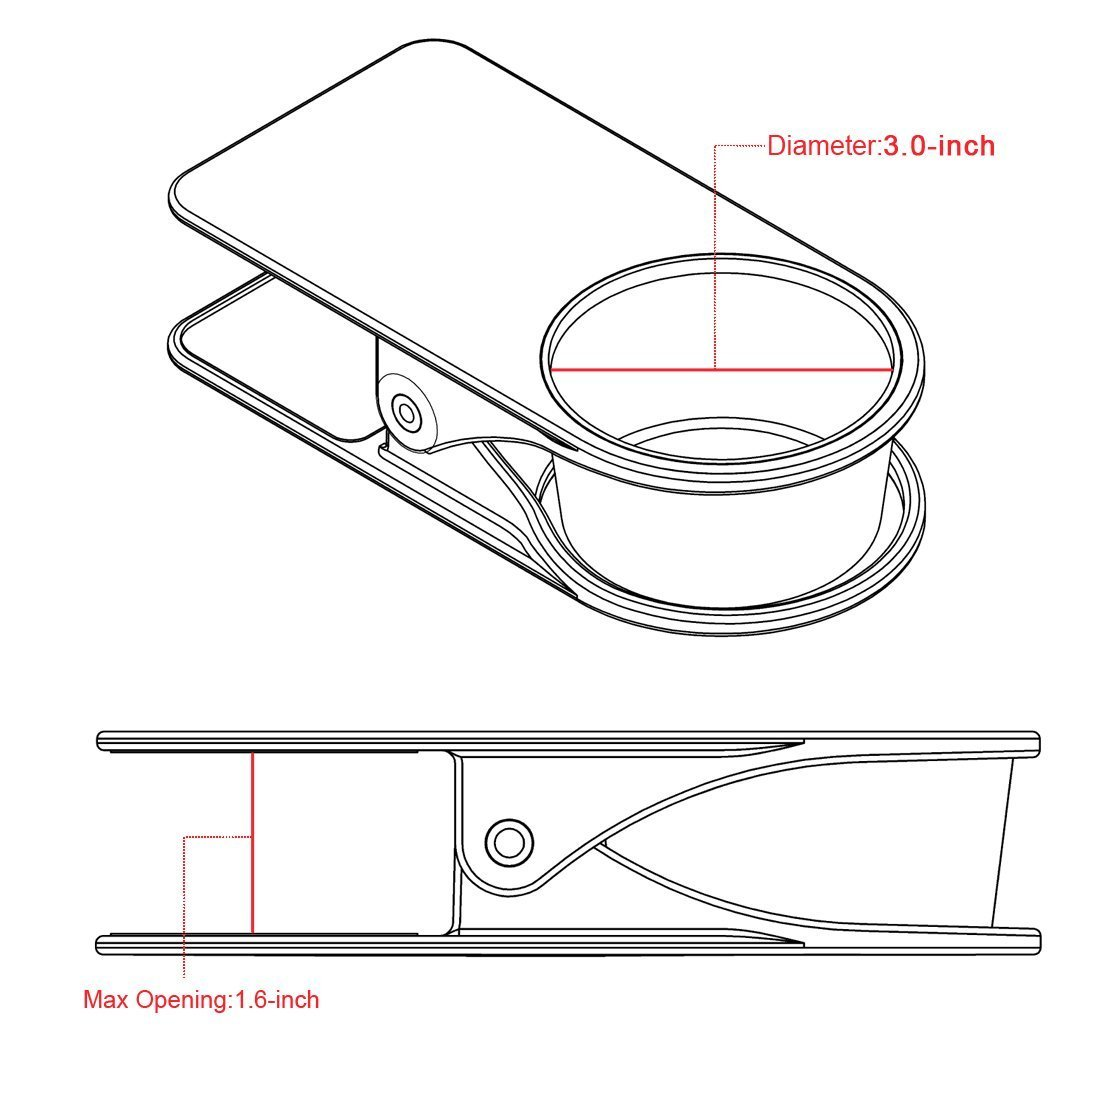 SERO Innovation Cup Clip Drink Holder - Black - Snap to tables, desks, chairs, shelves, counters. Keep your beverage, smartphone or other small item secure and out of the way. CCLIP001